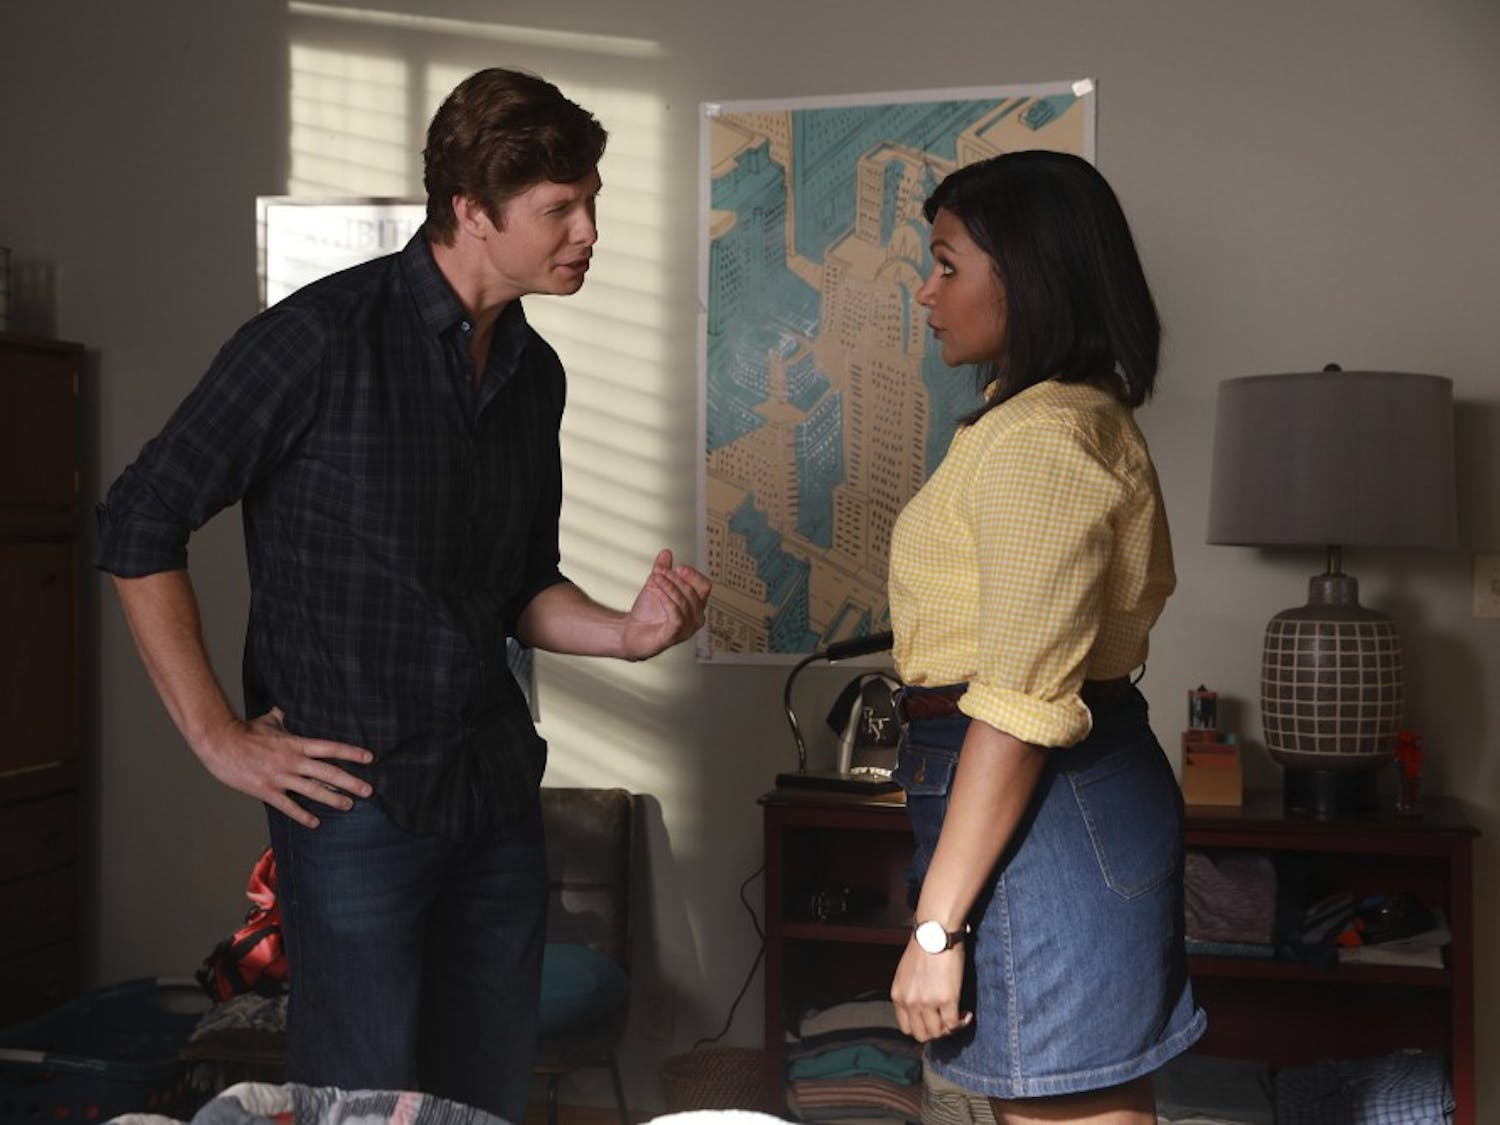 CHAMPIONS -- Pilot -- Pictured: (l-r) Anders Holm as Vince, Mindy Kaling as Priya -- (Photo by: Jordin Althaus/NBC)